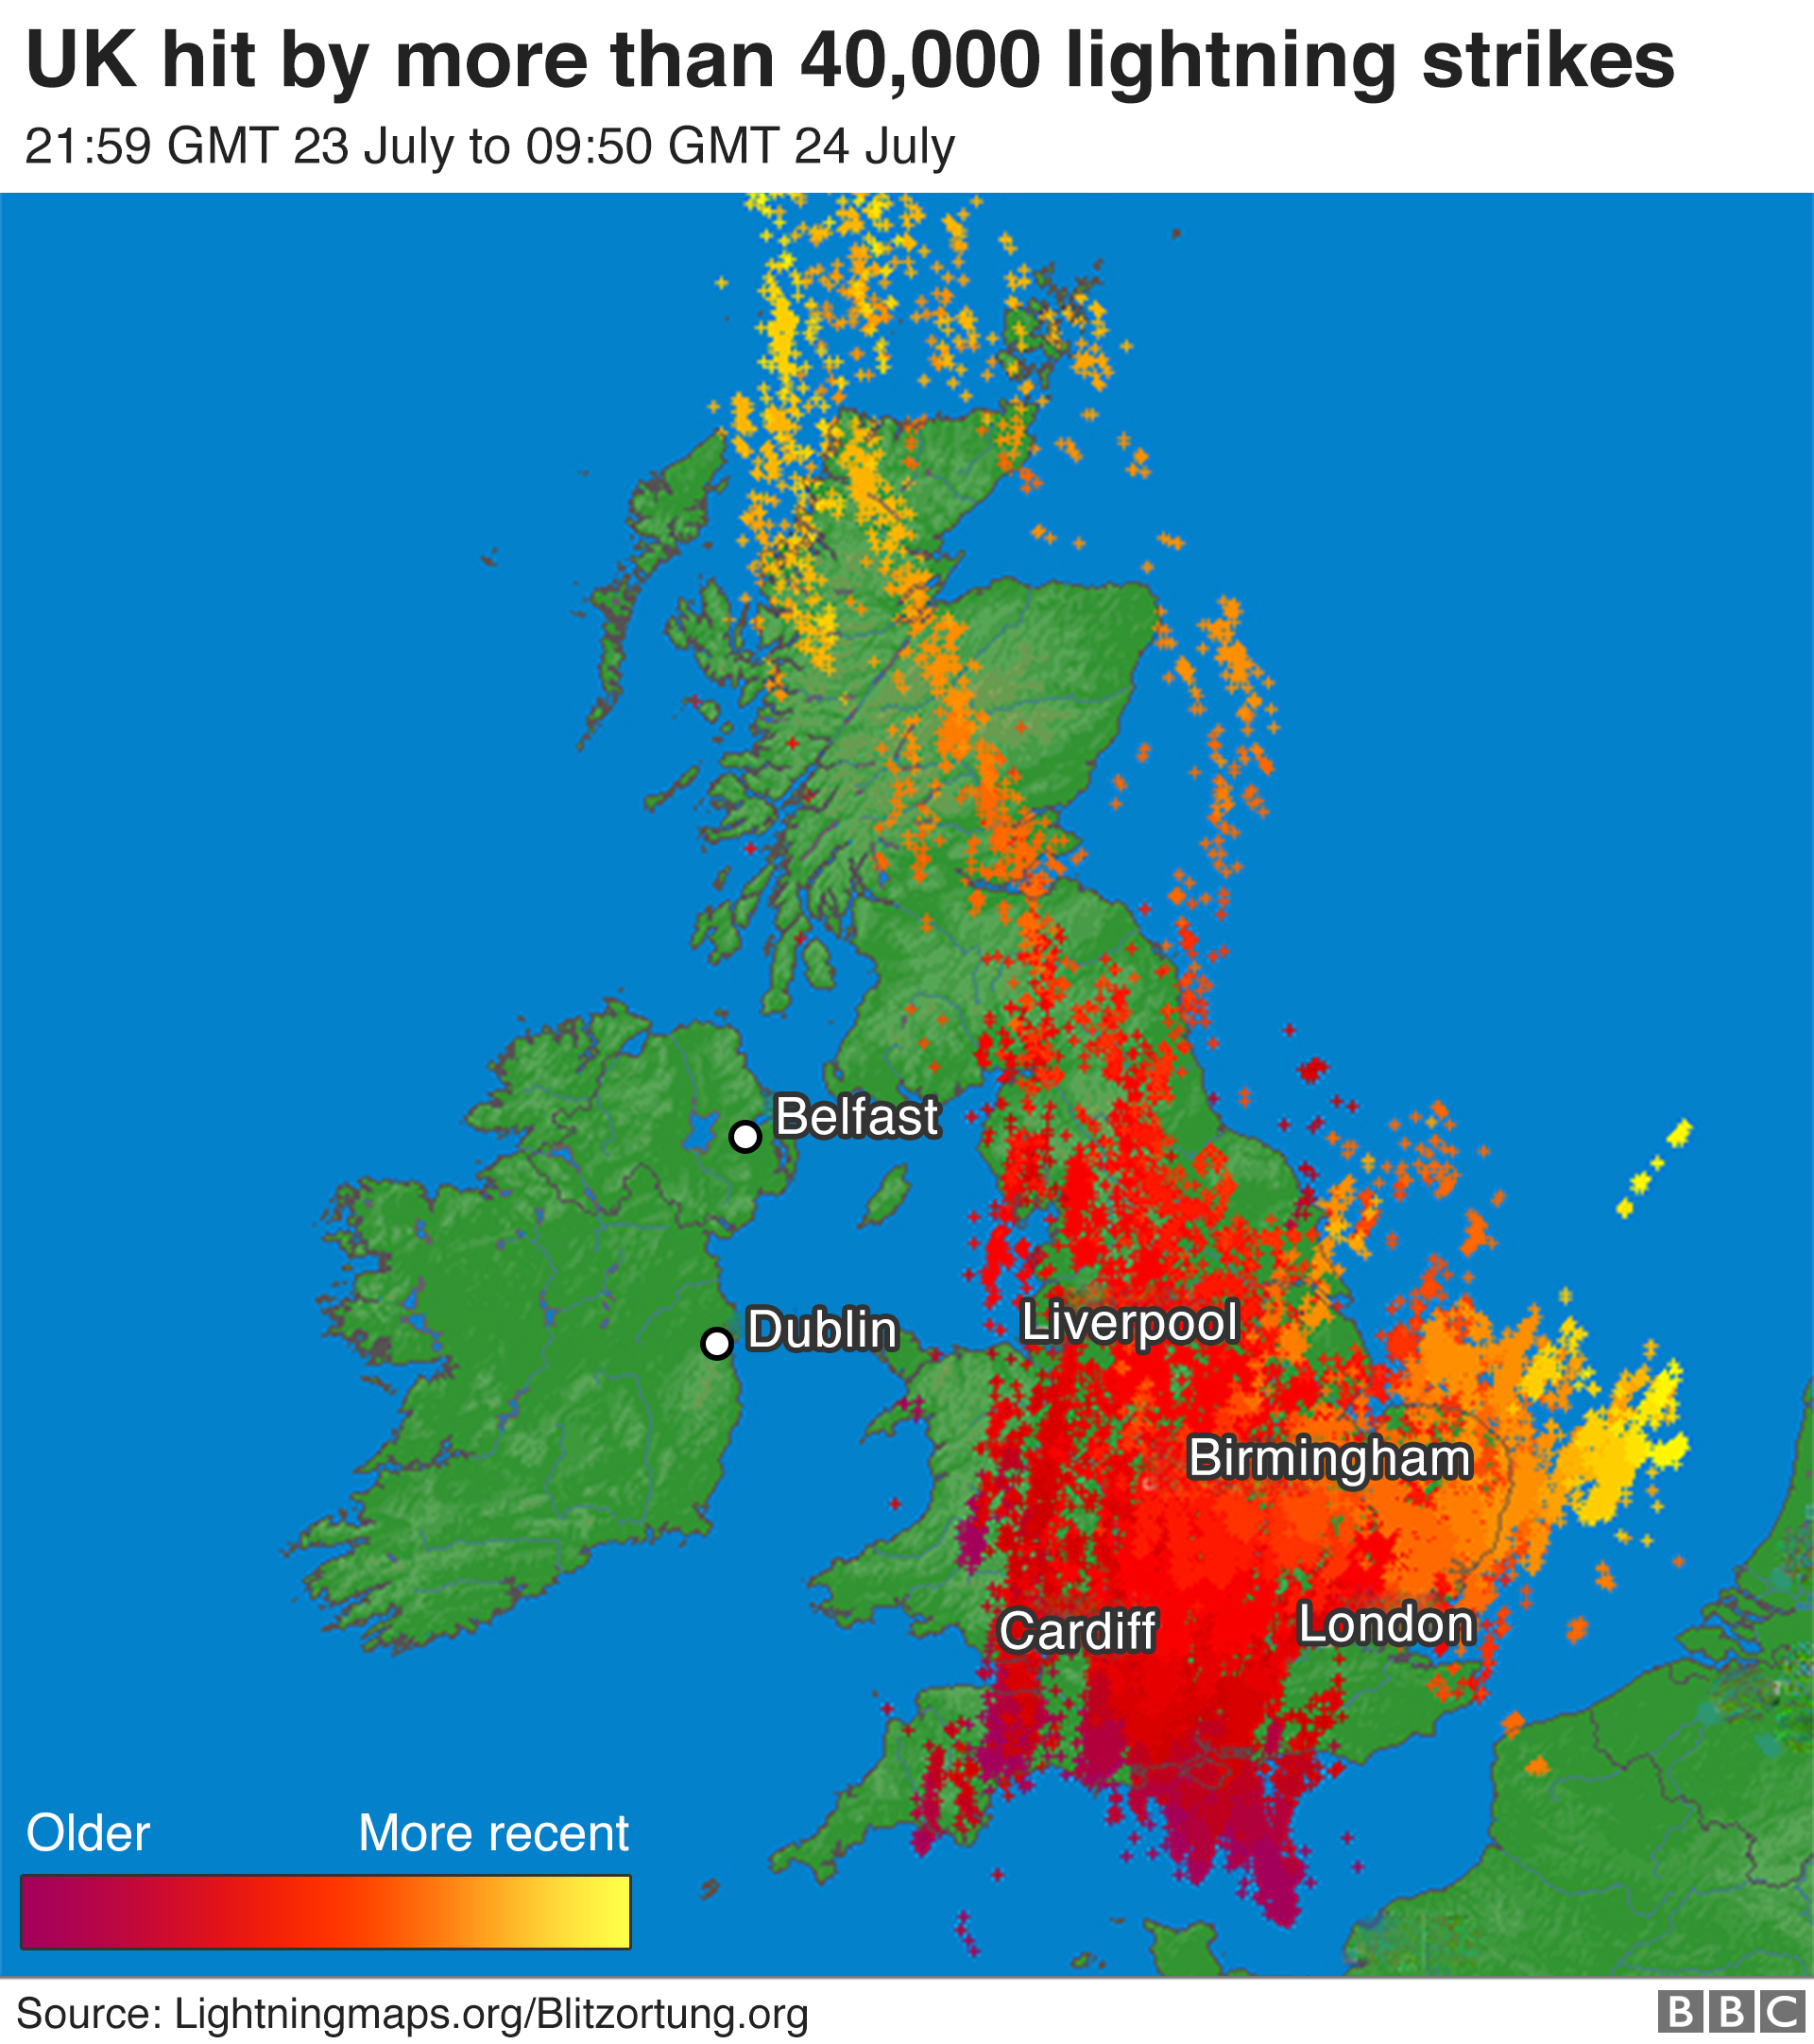 Lightning strikes hitting the UK in a 12 hour period